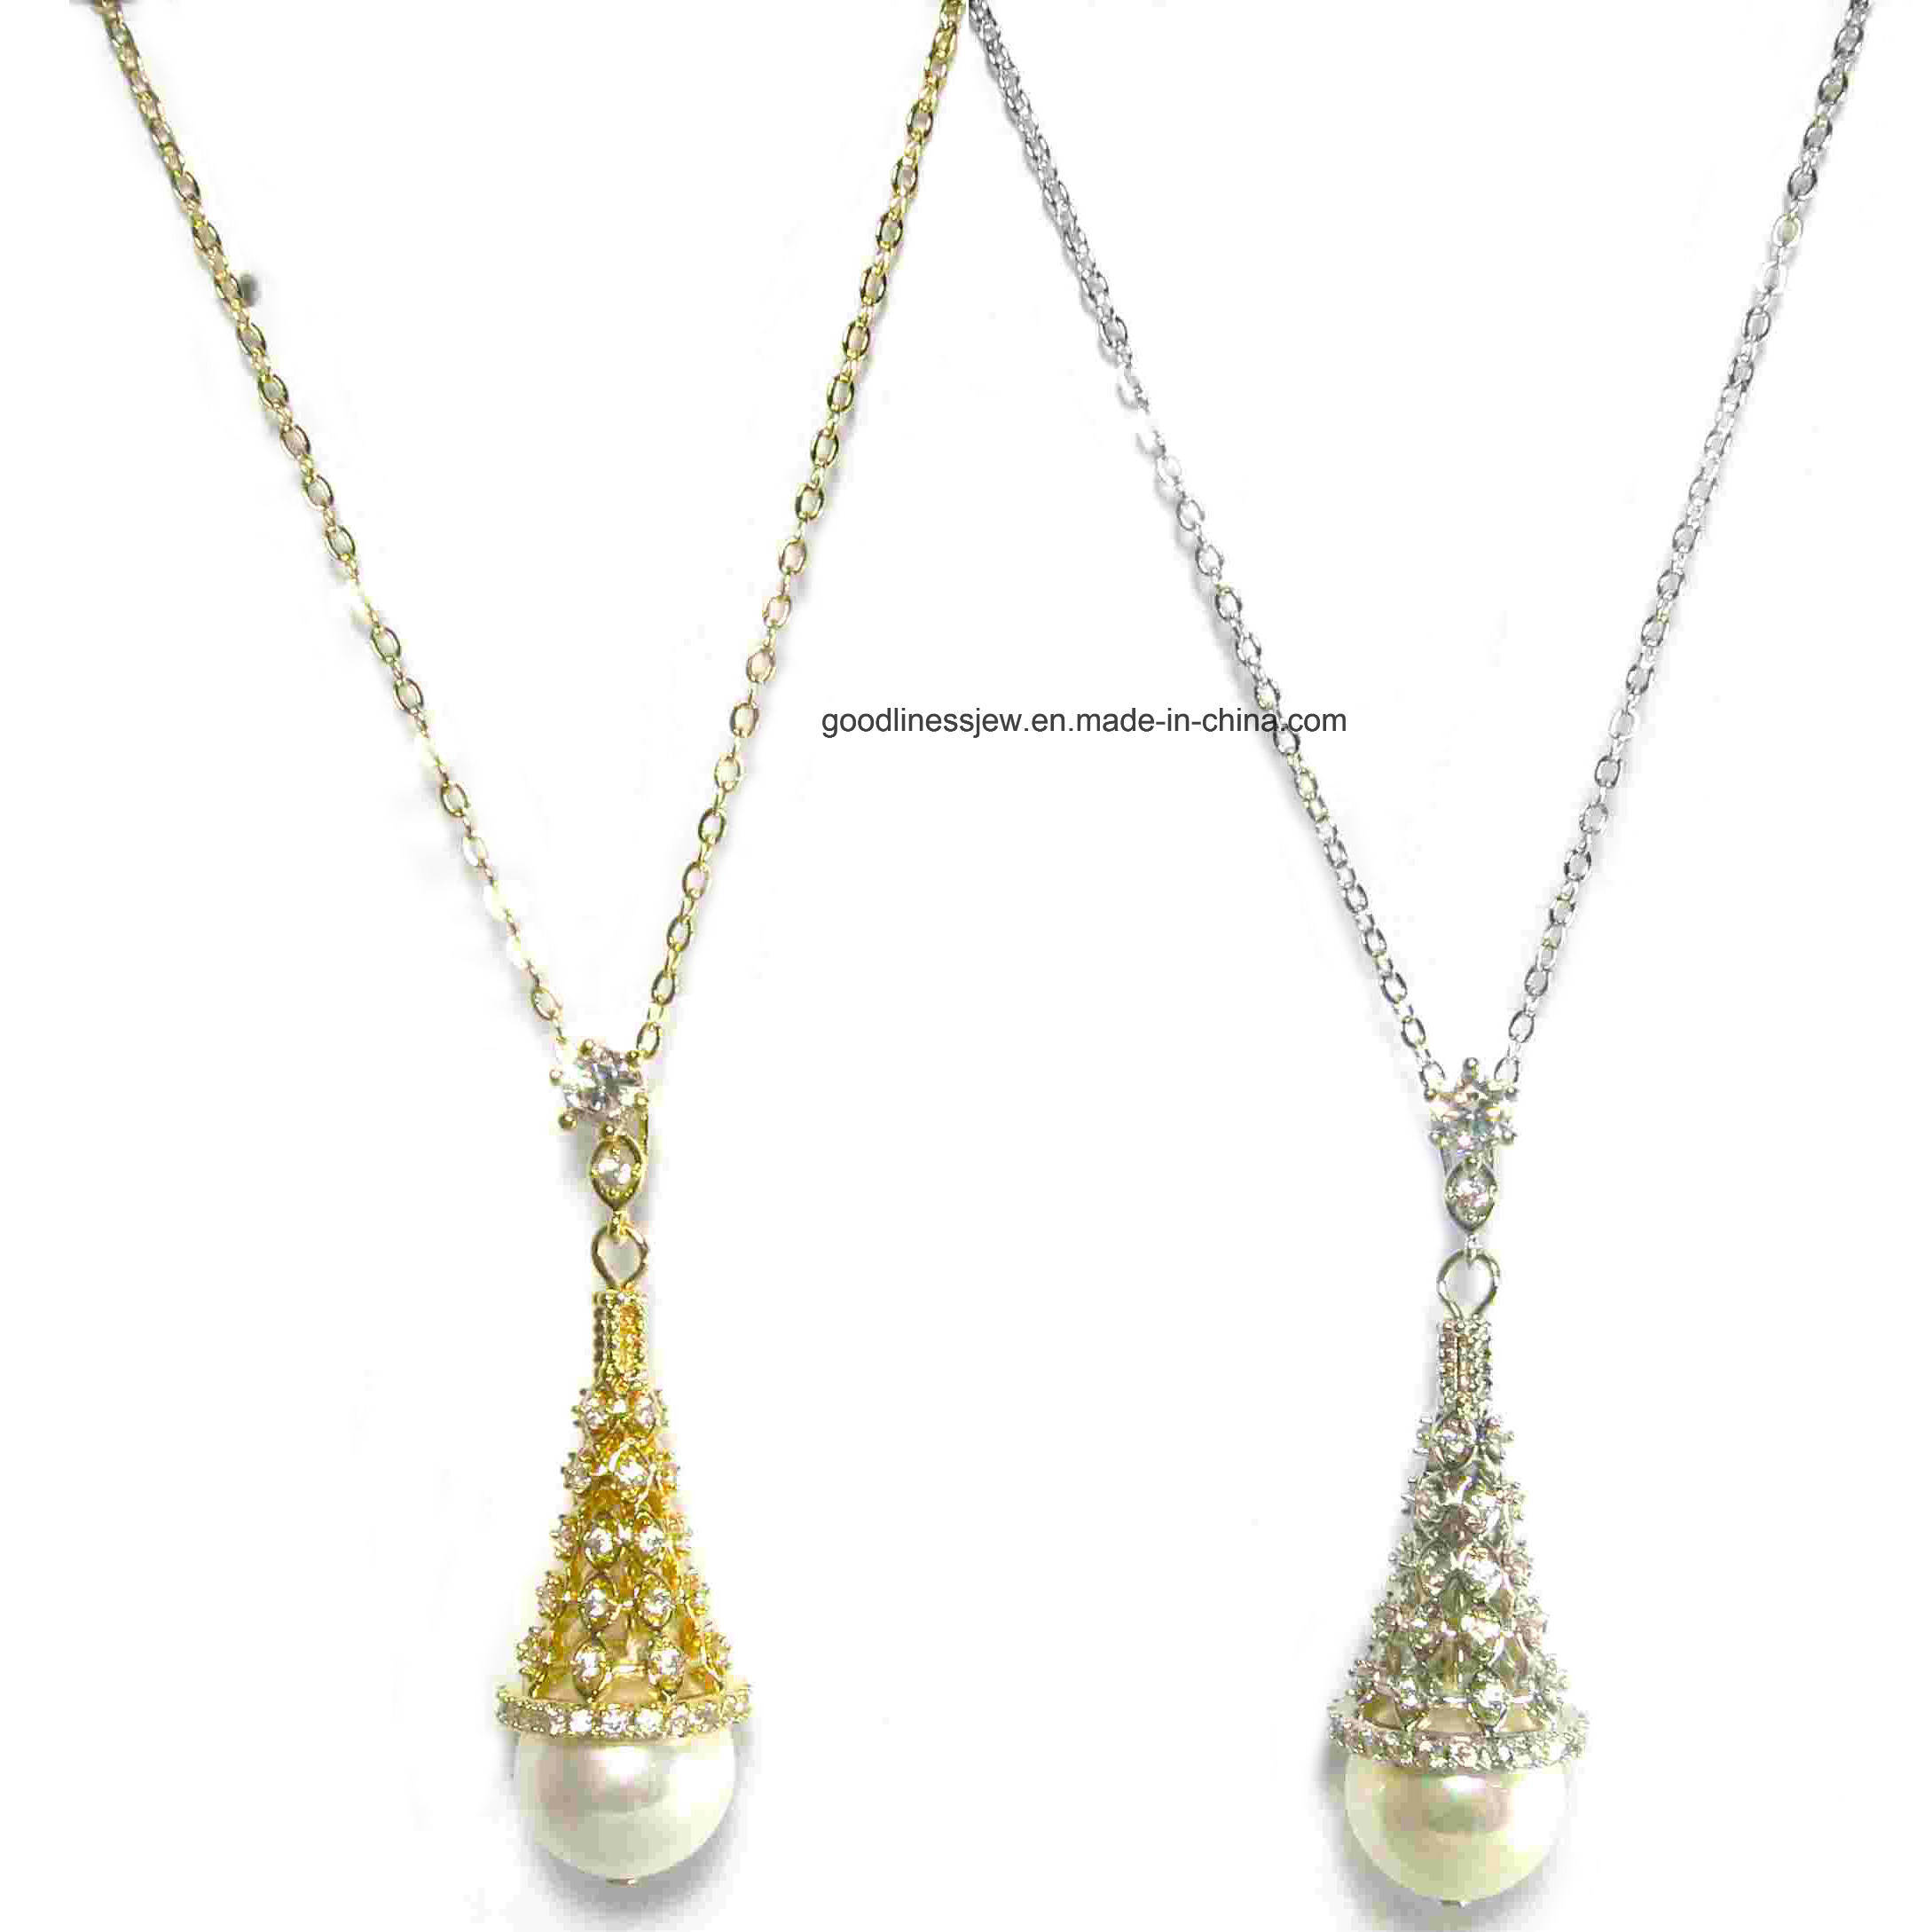 Jewelry Necklace Beaded Imitation Pearl Crystal Pendant Necklace Woman Bridal Fashion Jewellery Necklace Set 925 Sterling Silver Jewelry Chain Gold Necklace